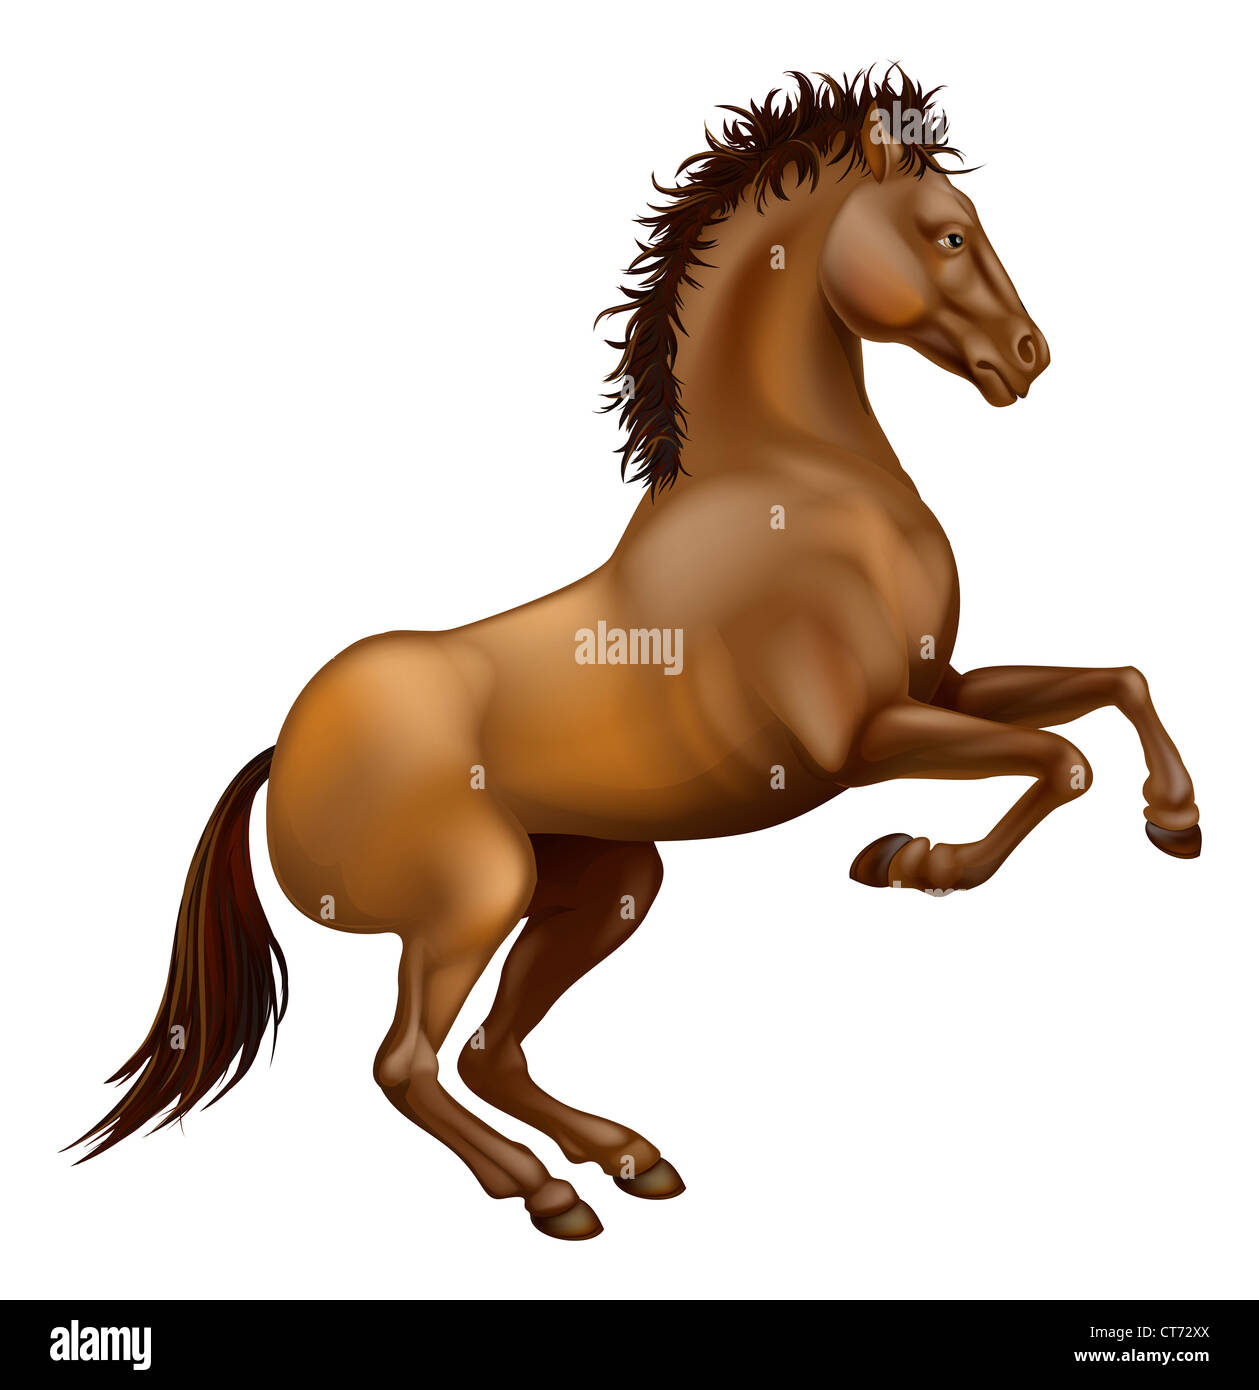 Illustration of a powerful brown horse rearing on its hind legs - Stock Image